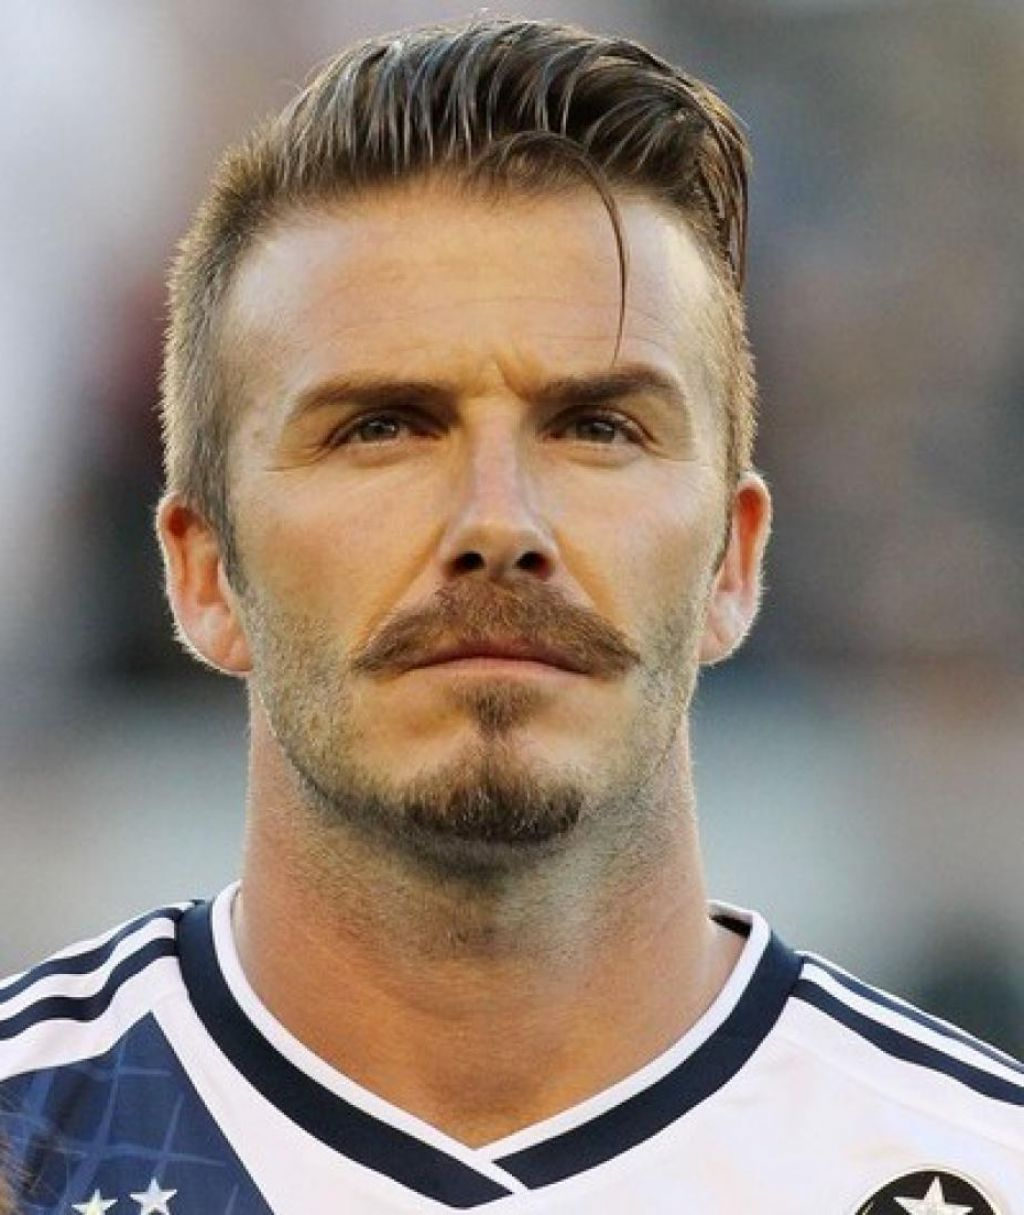 David Beckham Pompadour Hairstyle With Mustache Men Hairstyle